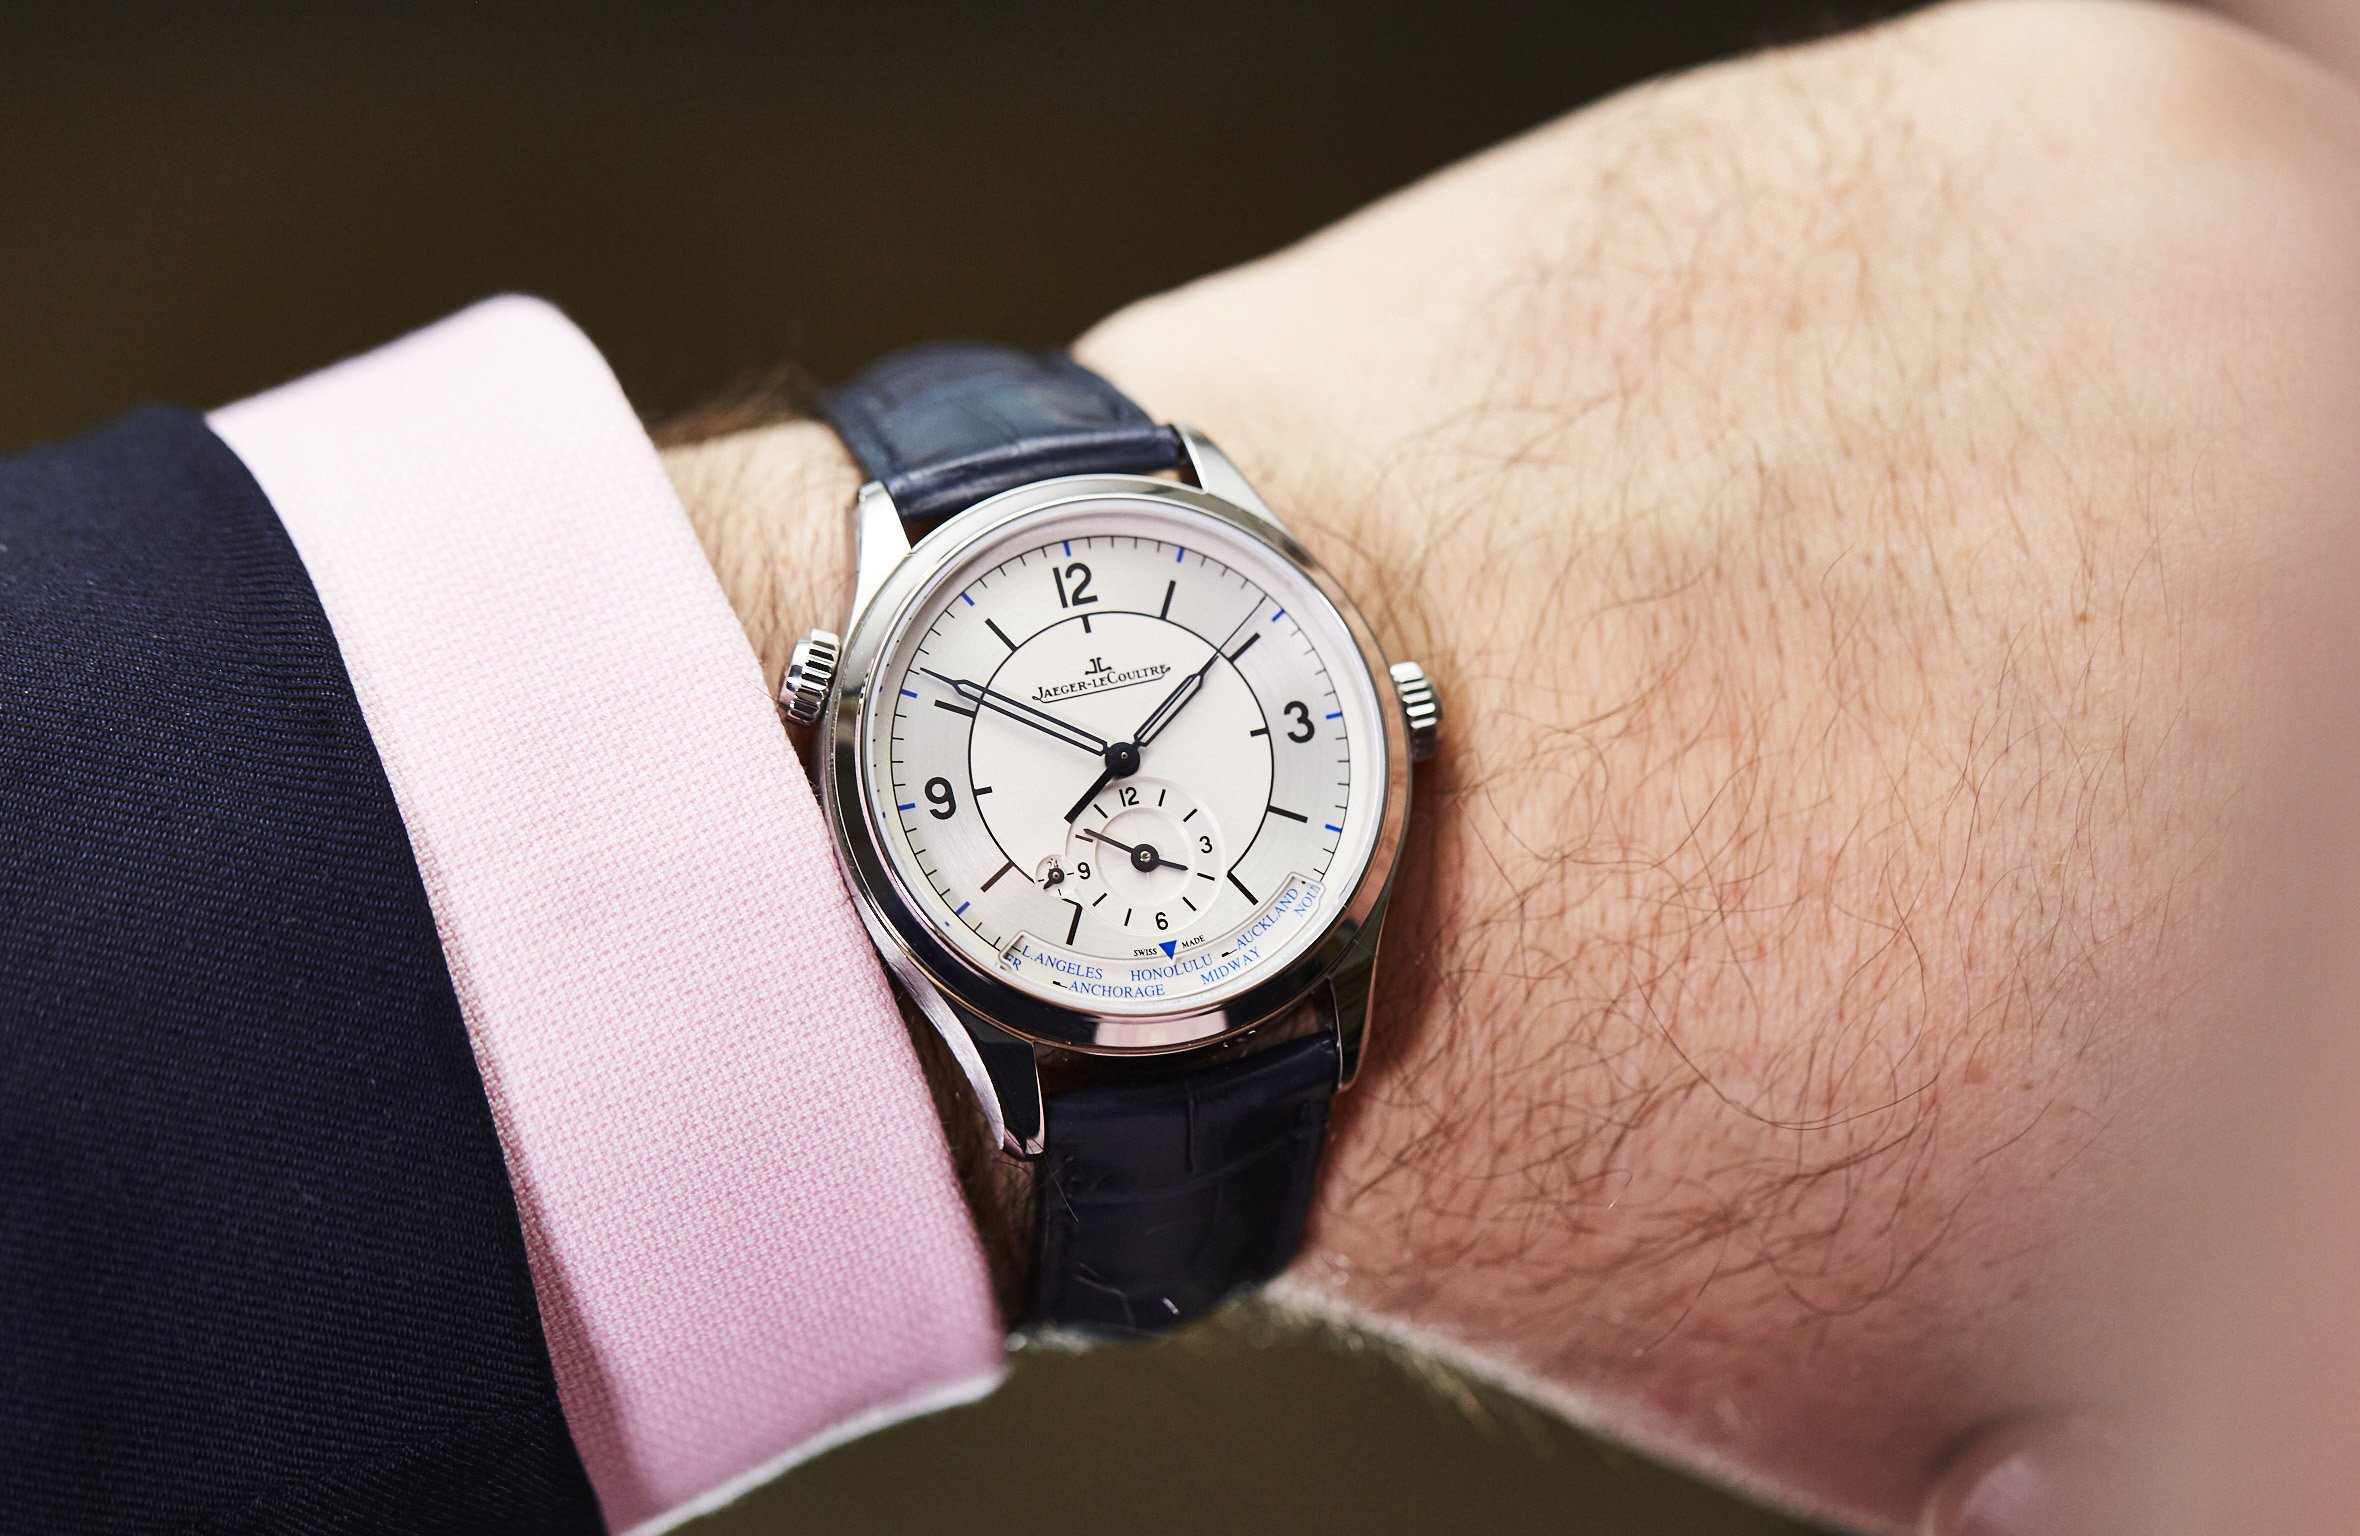 HANDS-ON: Simply masterful — the Jaeger-LeCoultre Master ...